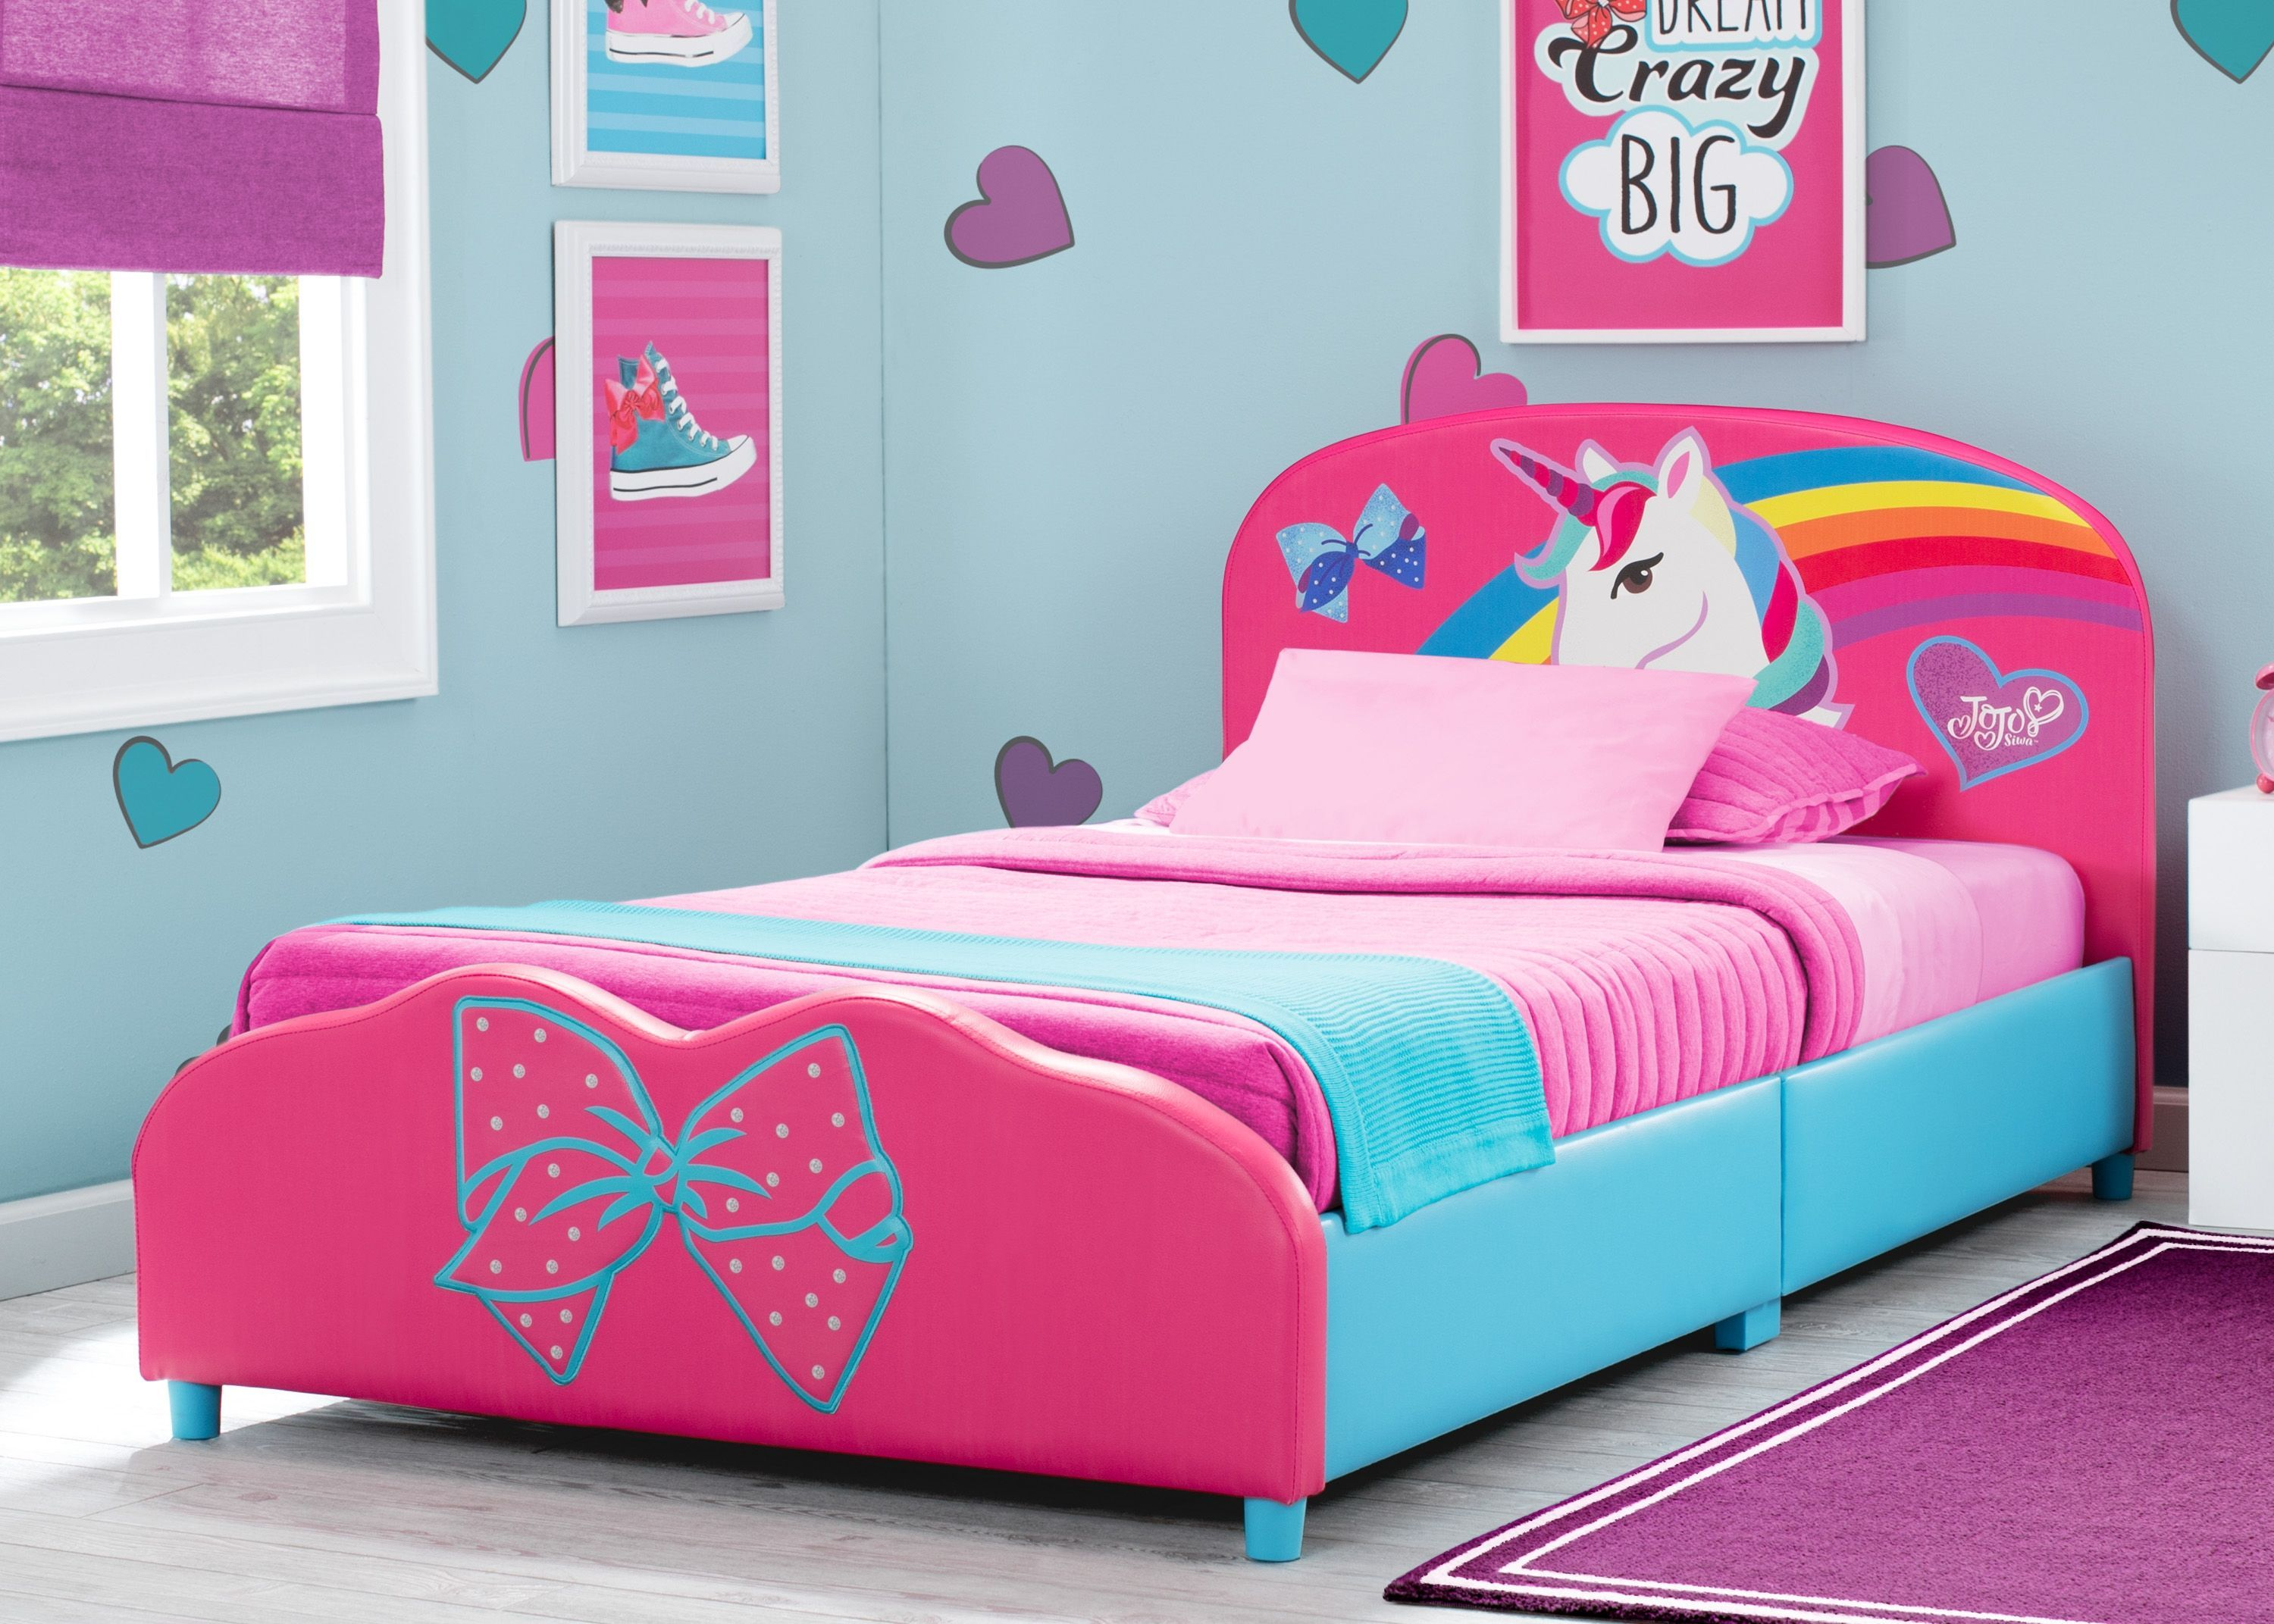 Delta Children Jojo Siwa Upholstered Twin Bed Pink Leather In